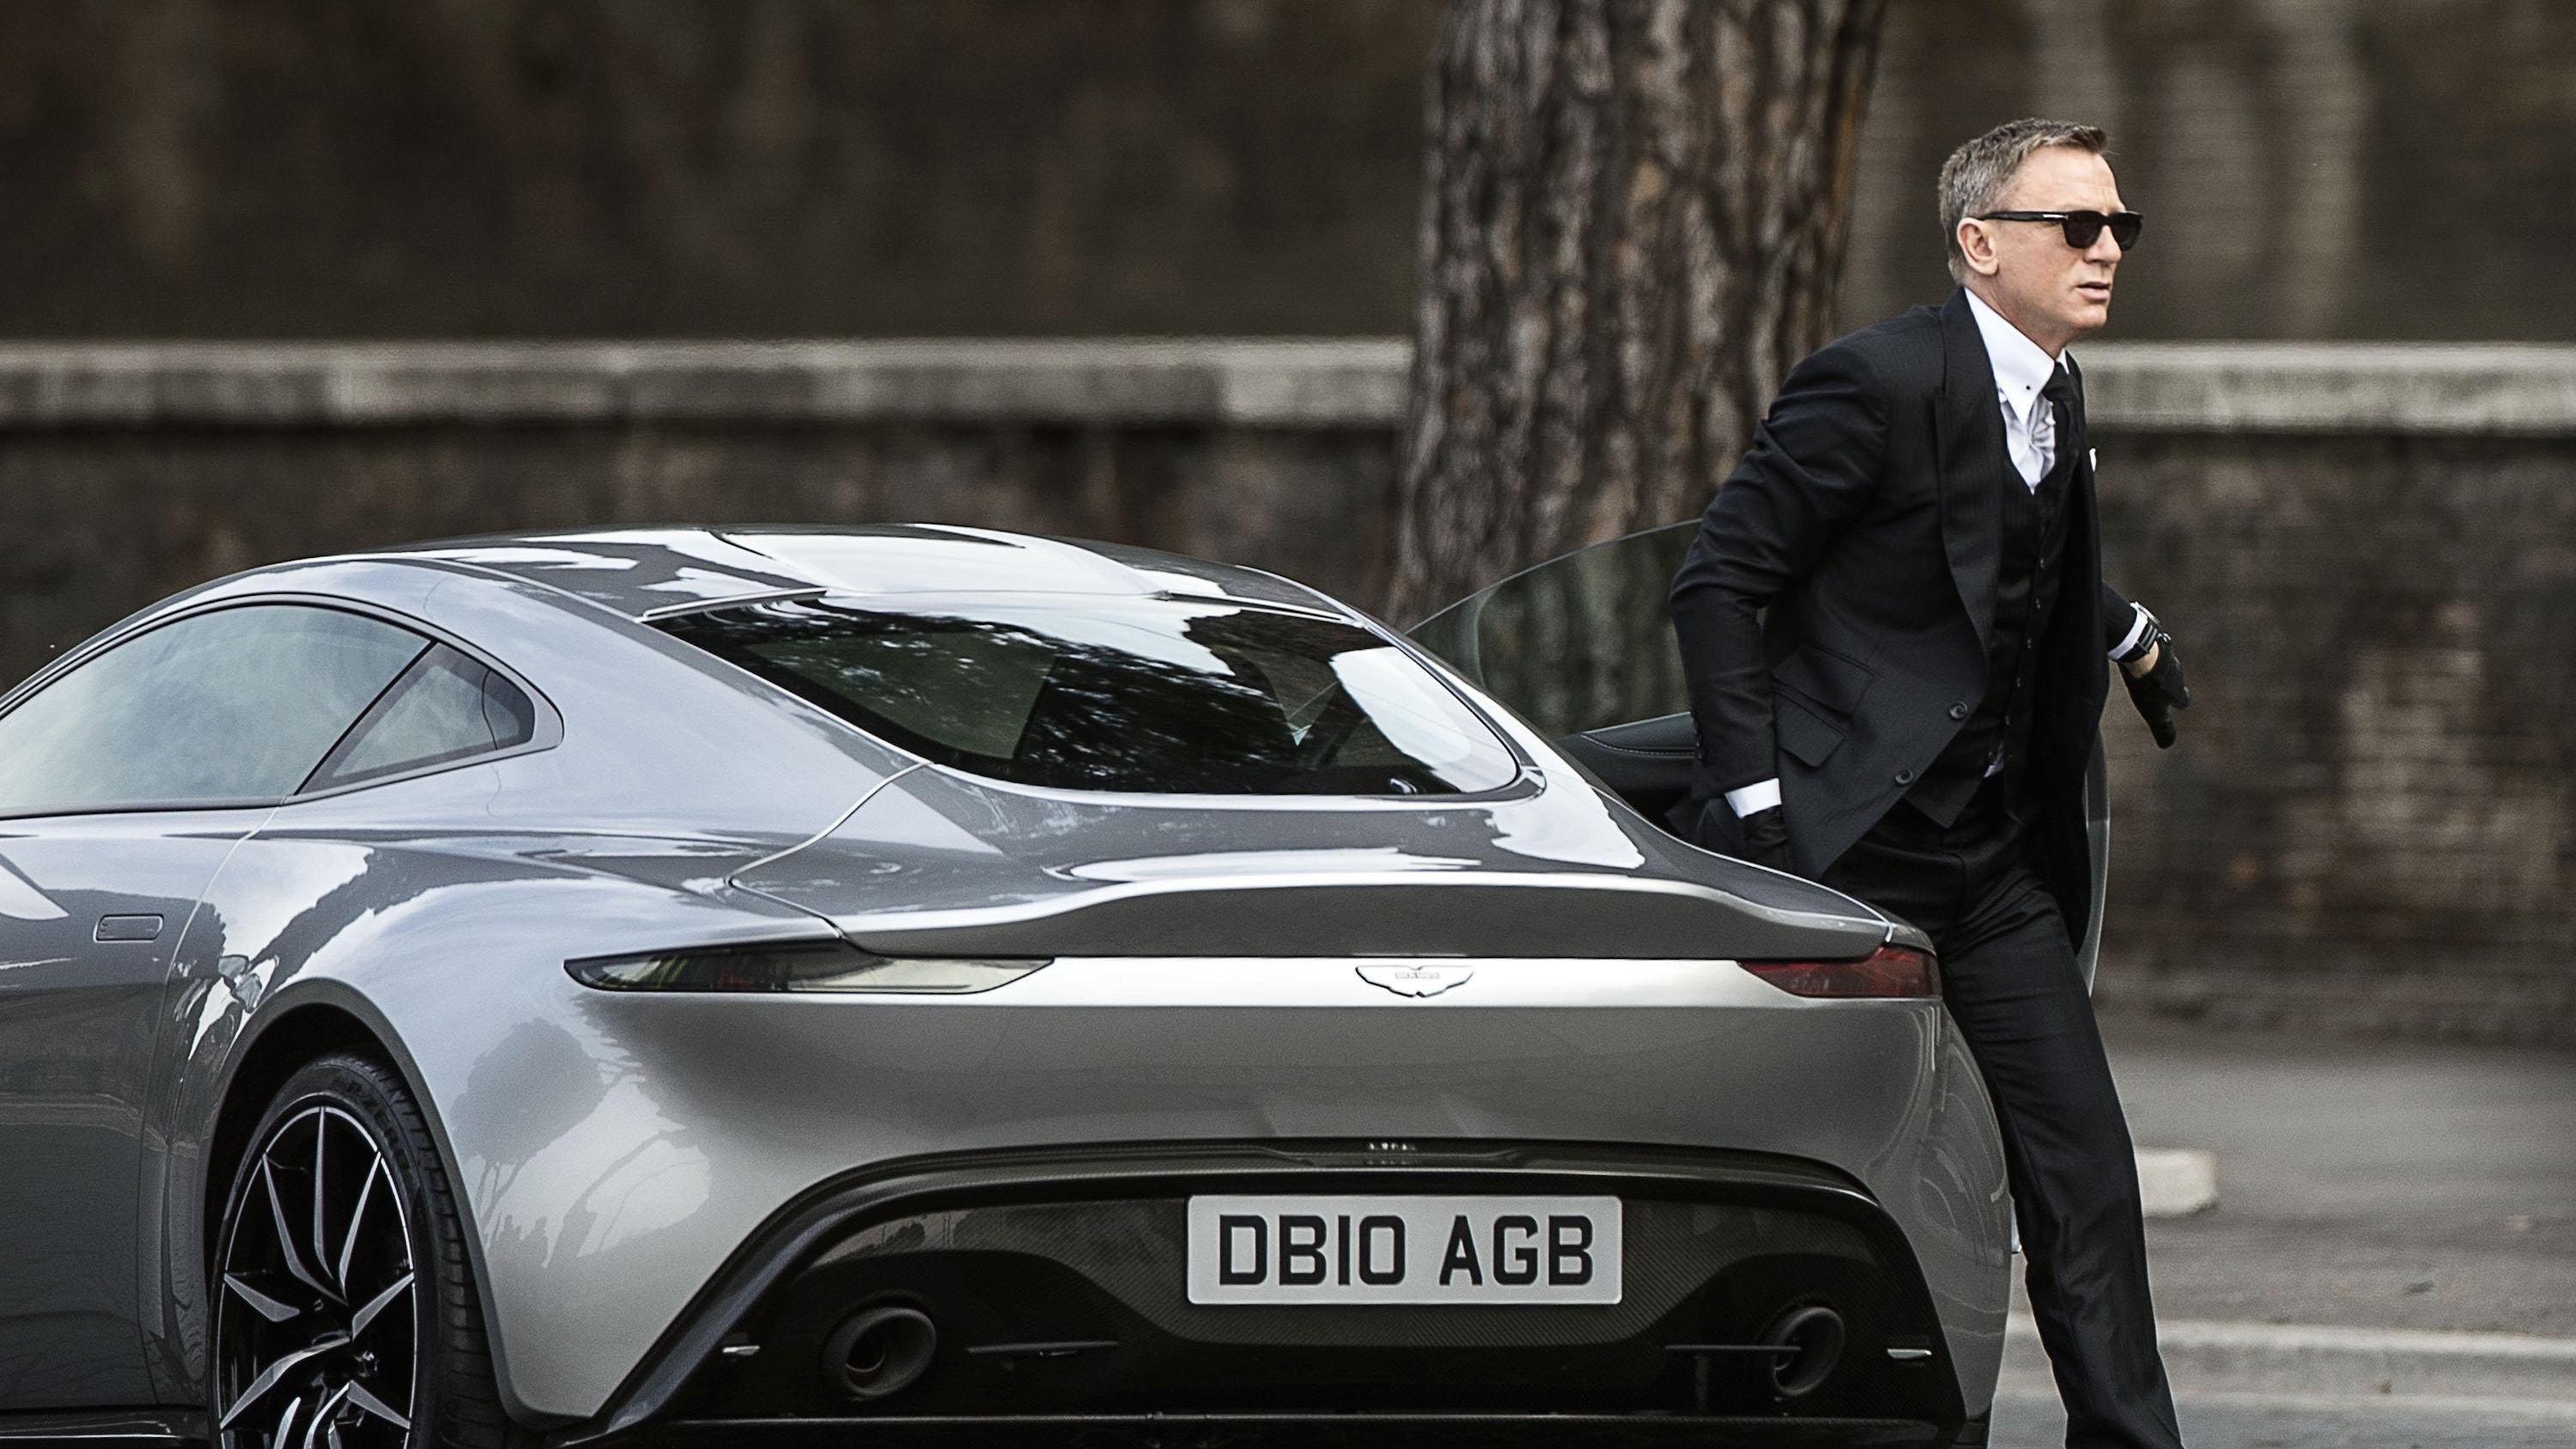 The World Has Had Enough Let This James Bond Movie Be The Last One